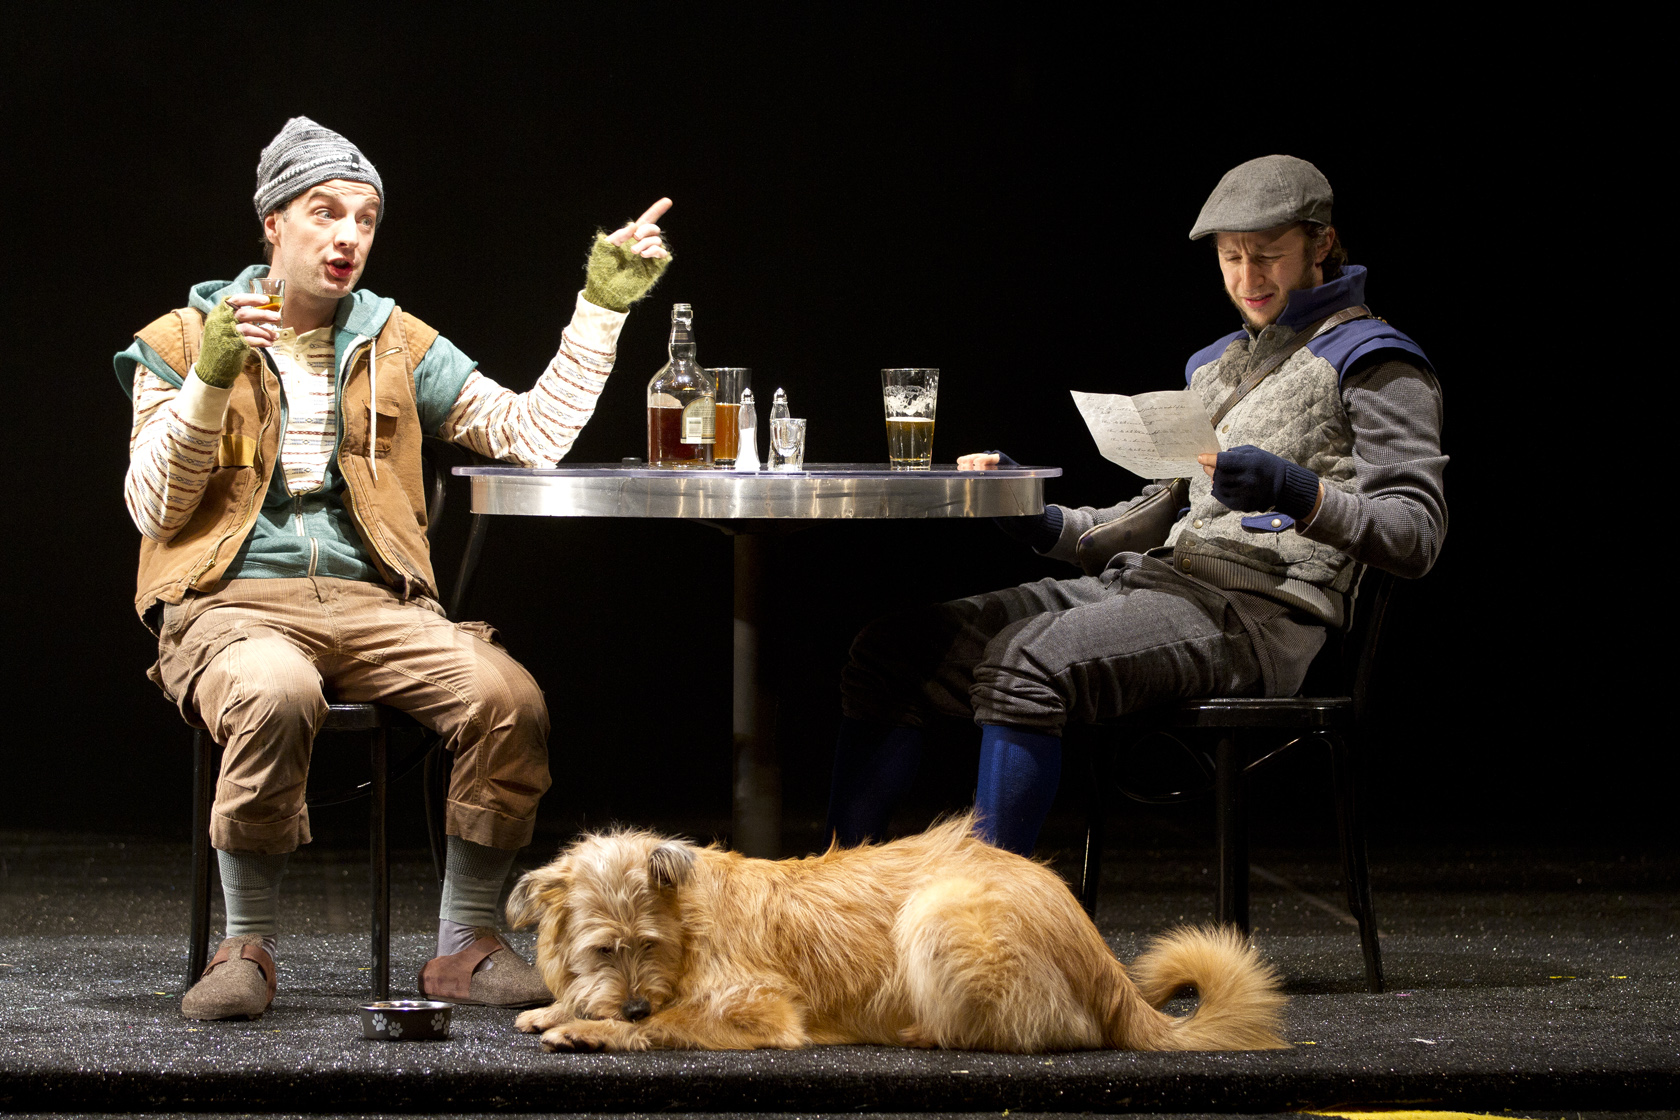 Euan Morton as Launce, Oliver the dog as Crab and Adam Green as Speed in the Shakespeare Theatre Company's production of The Two Gentlemen of Verona, directed by PJ Paparelli. Photo by Scott Suchman.